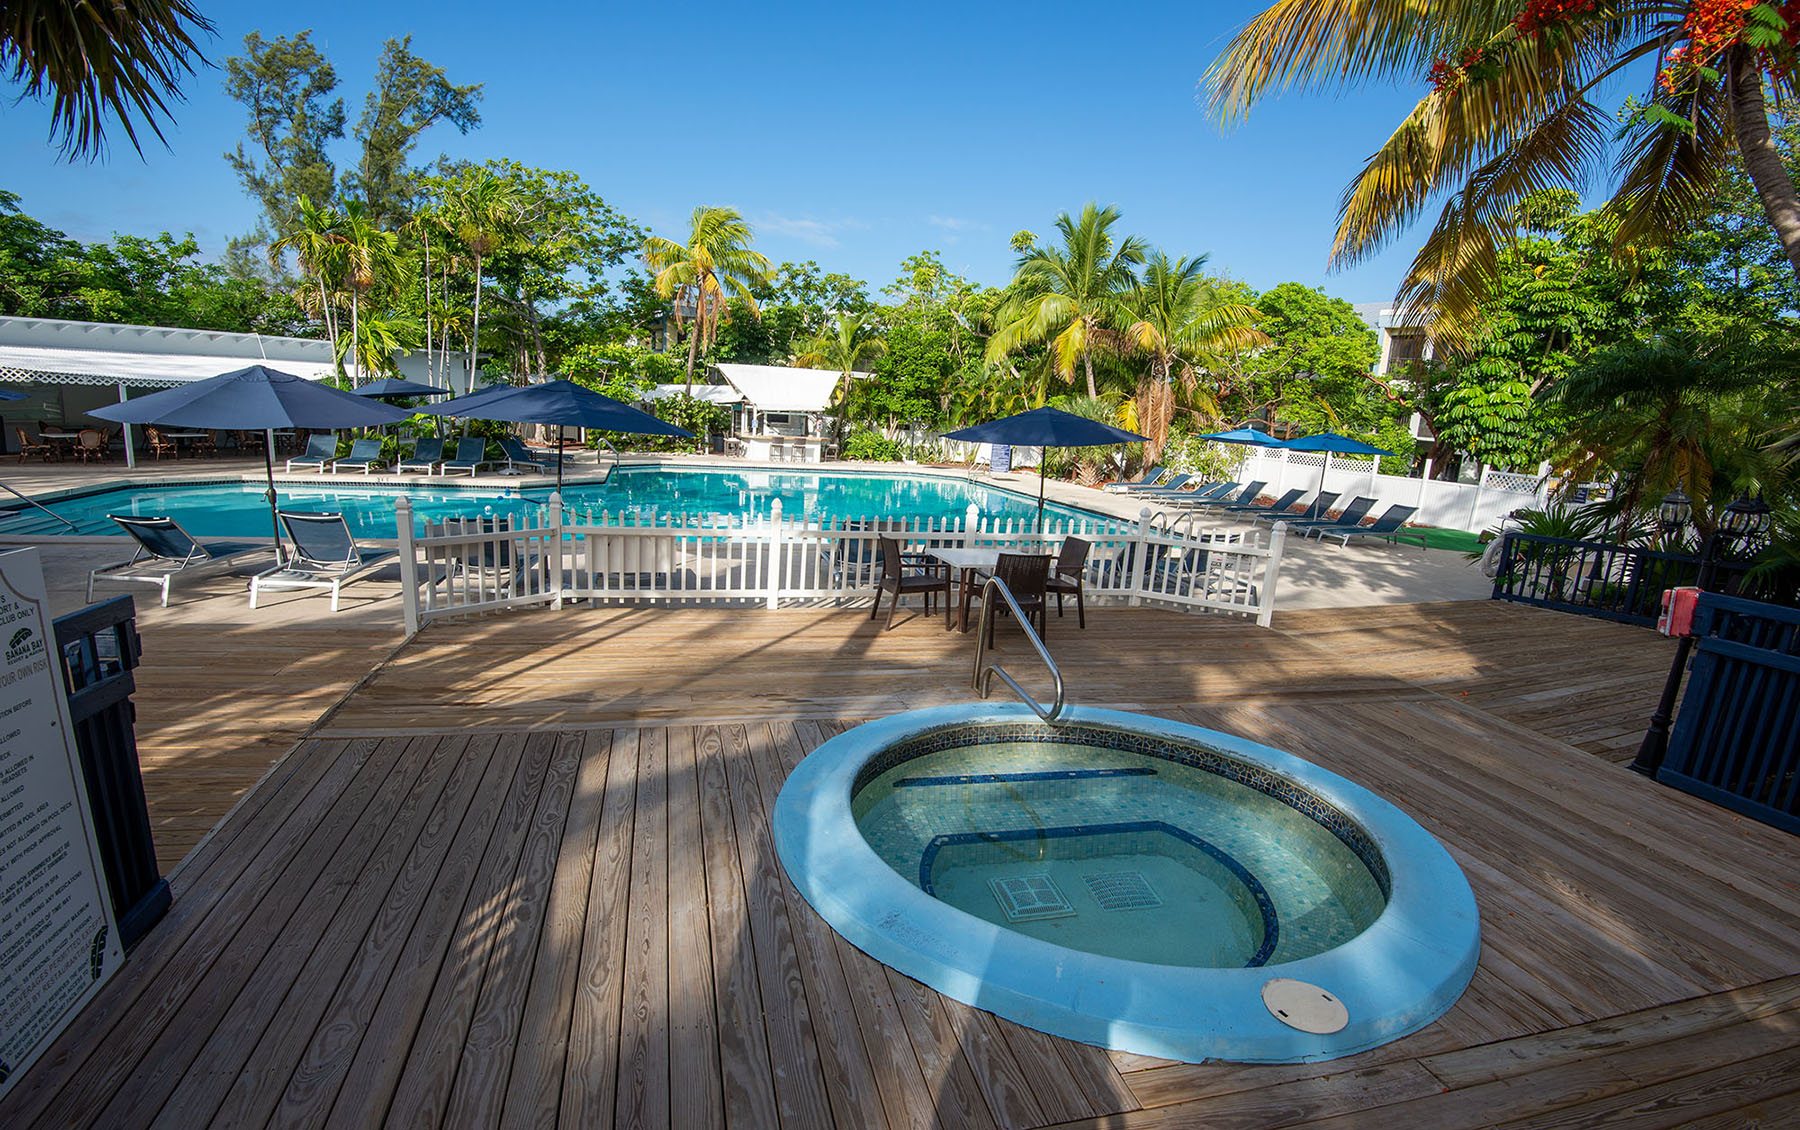 Marathon Key Beach Club spa and pool